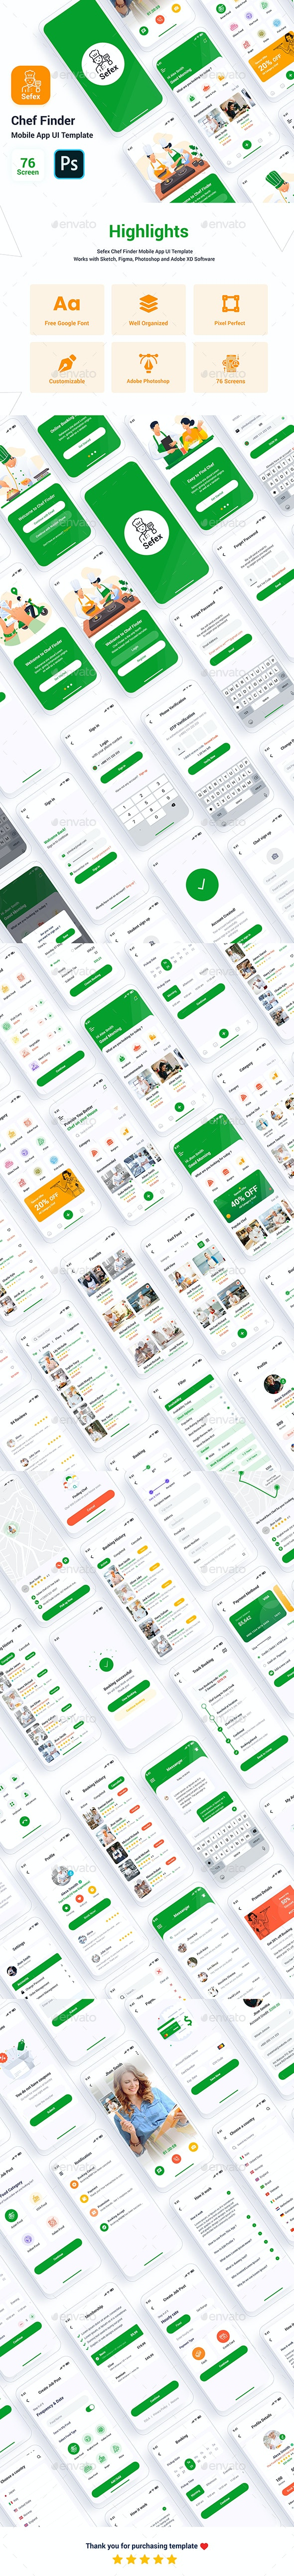 Sefex - Chef Finder Mobile App UI Template - User Interfaces Web Elements